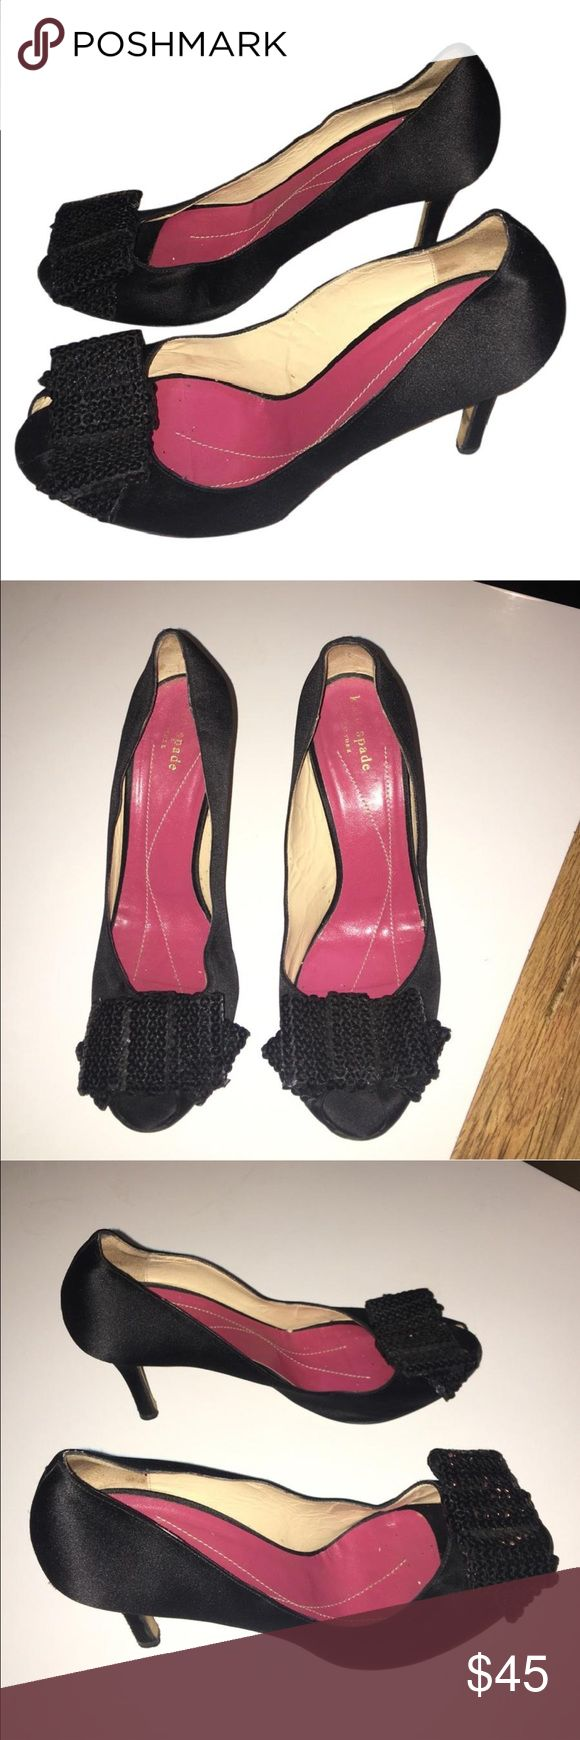 "Authentic Kate Spade black heels sz 8.5 Good Condition Authentic Kate Spade black satin with a bow heels pumps 8.5 light scuffs light wear 3"" heels super cute shoes for prom wedding special event kate spade Shoes Heels"